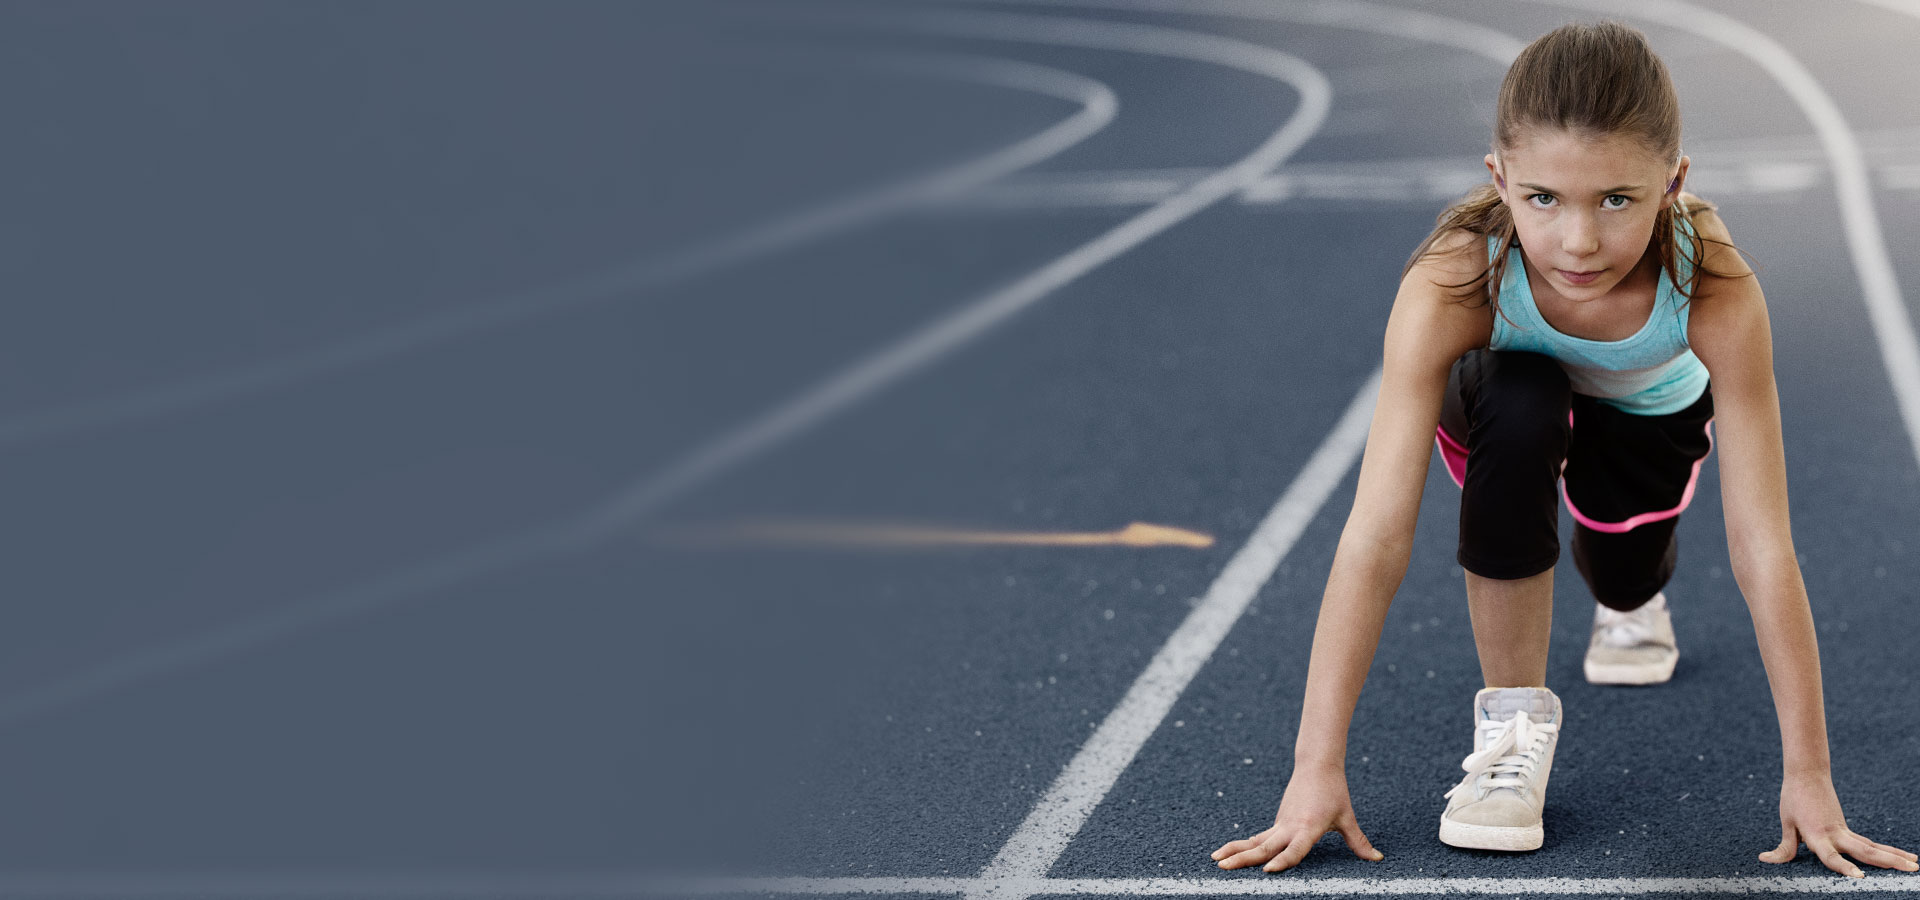 girl on a track